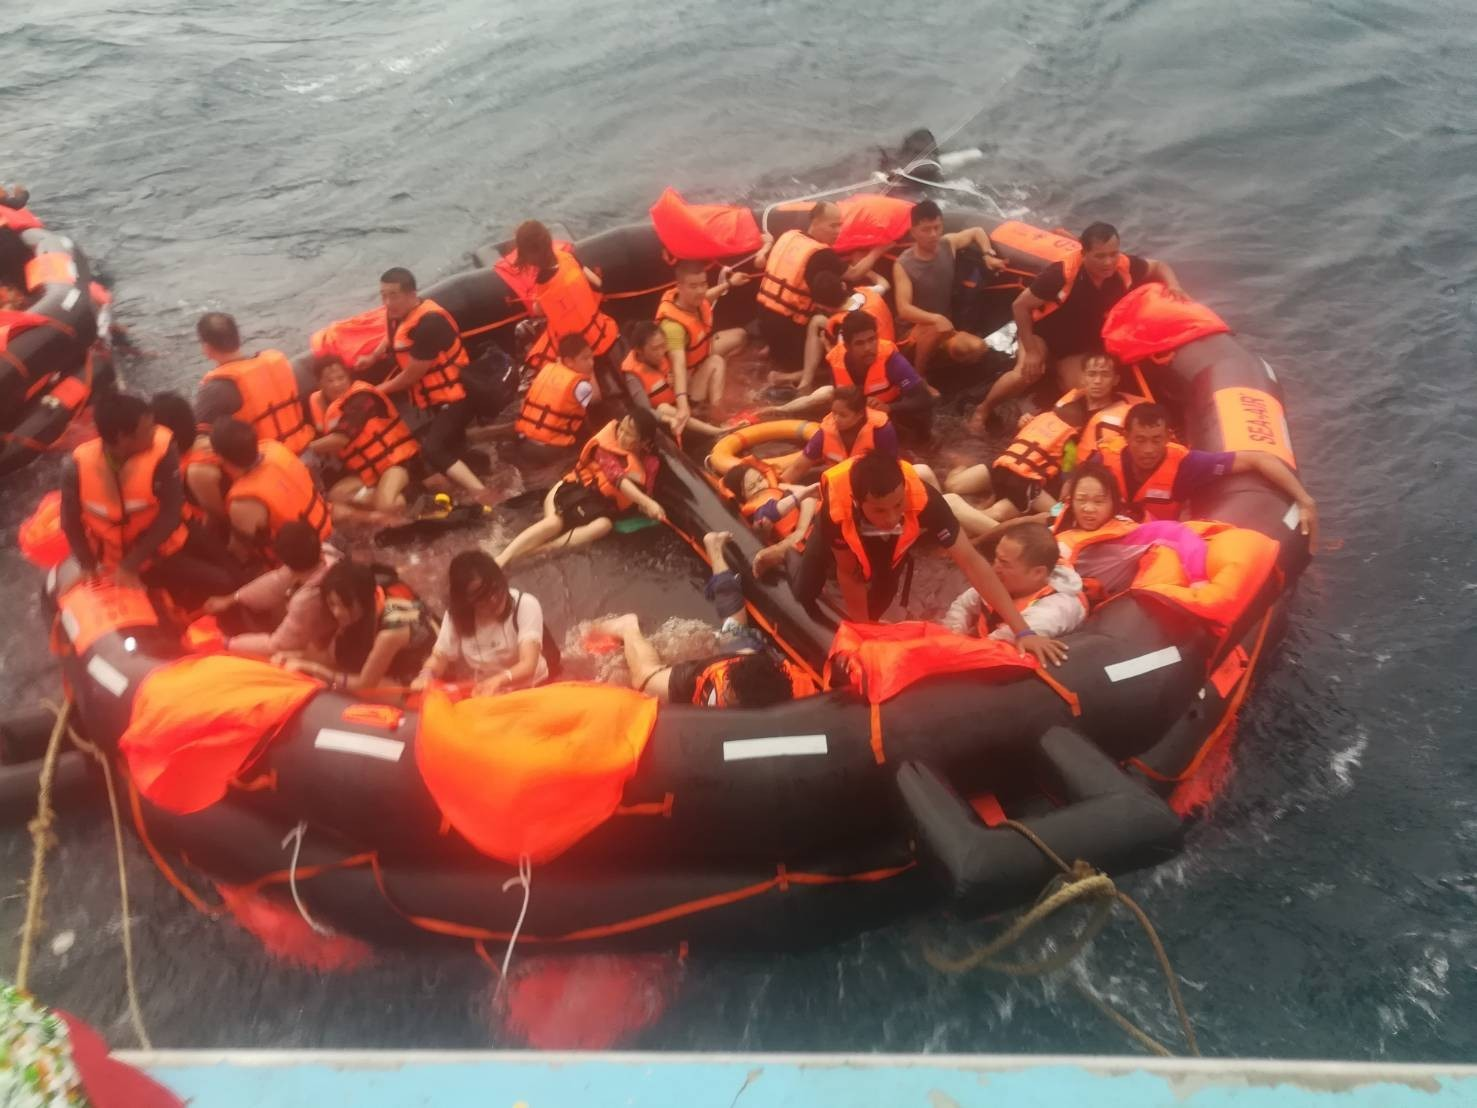 Carnage off the coast of Phuket | The Thaiger